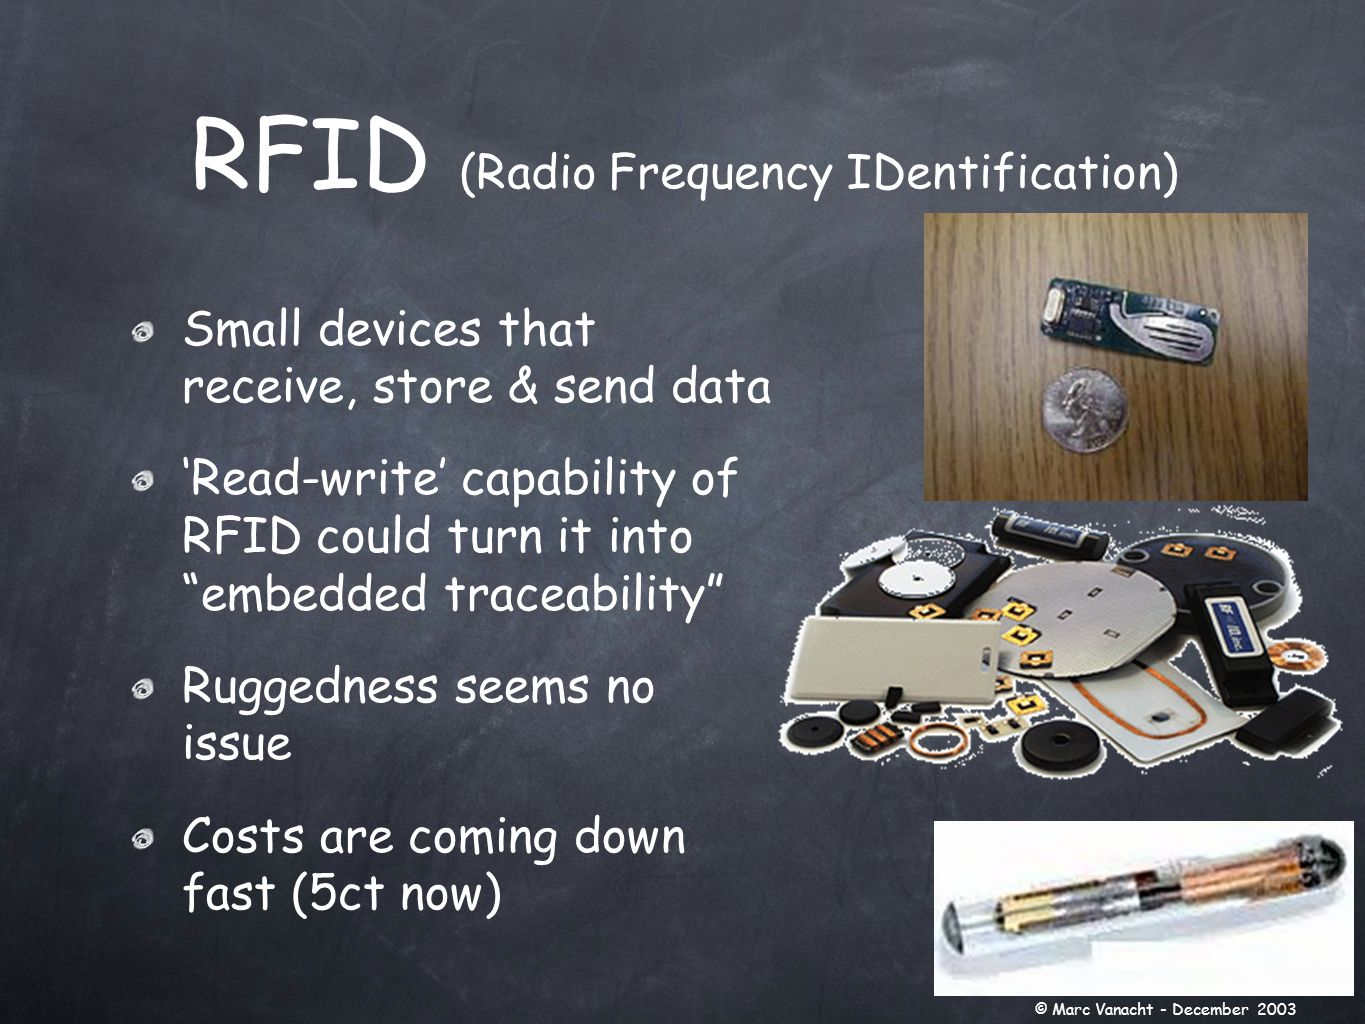 Small devices that receive, store & send data 'Read-write' capability of RFID could turn it into embedded traceability Ruggedness seems no issue Costs are coming down fast (5ct now) RFID (Radio Frequency IDentification) © Marc Vanacht - December 2003